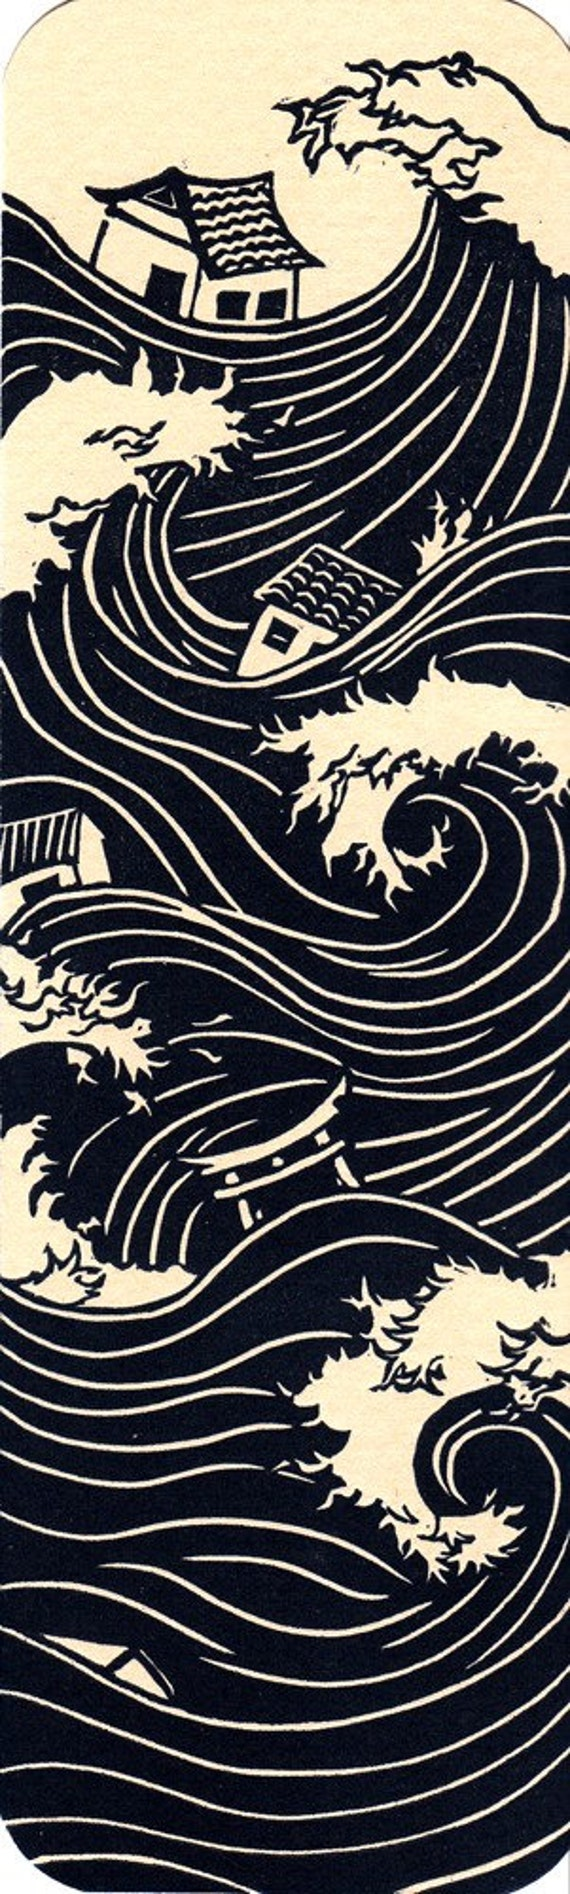 Tsunami Bookmark - Japan Disaster Relief, Linoleum Relief Print, Hand Pulled Linocut